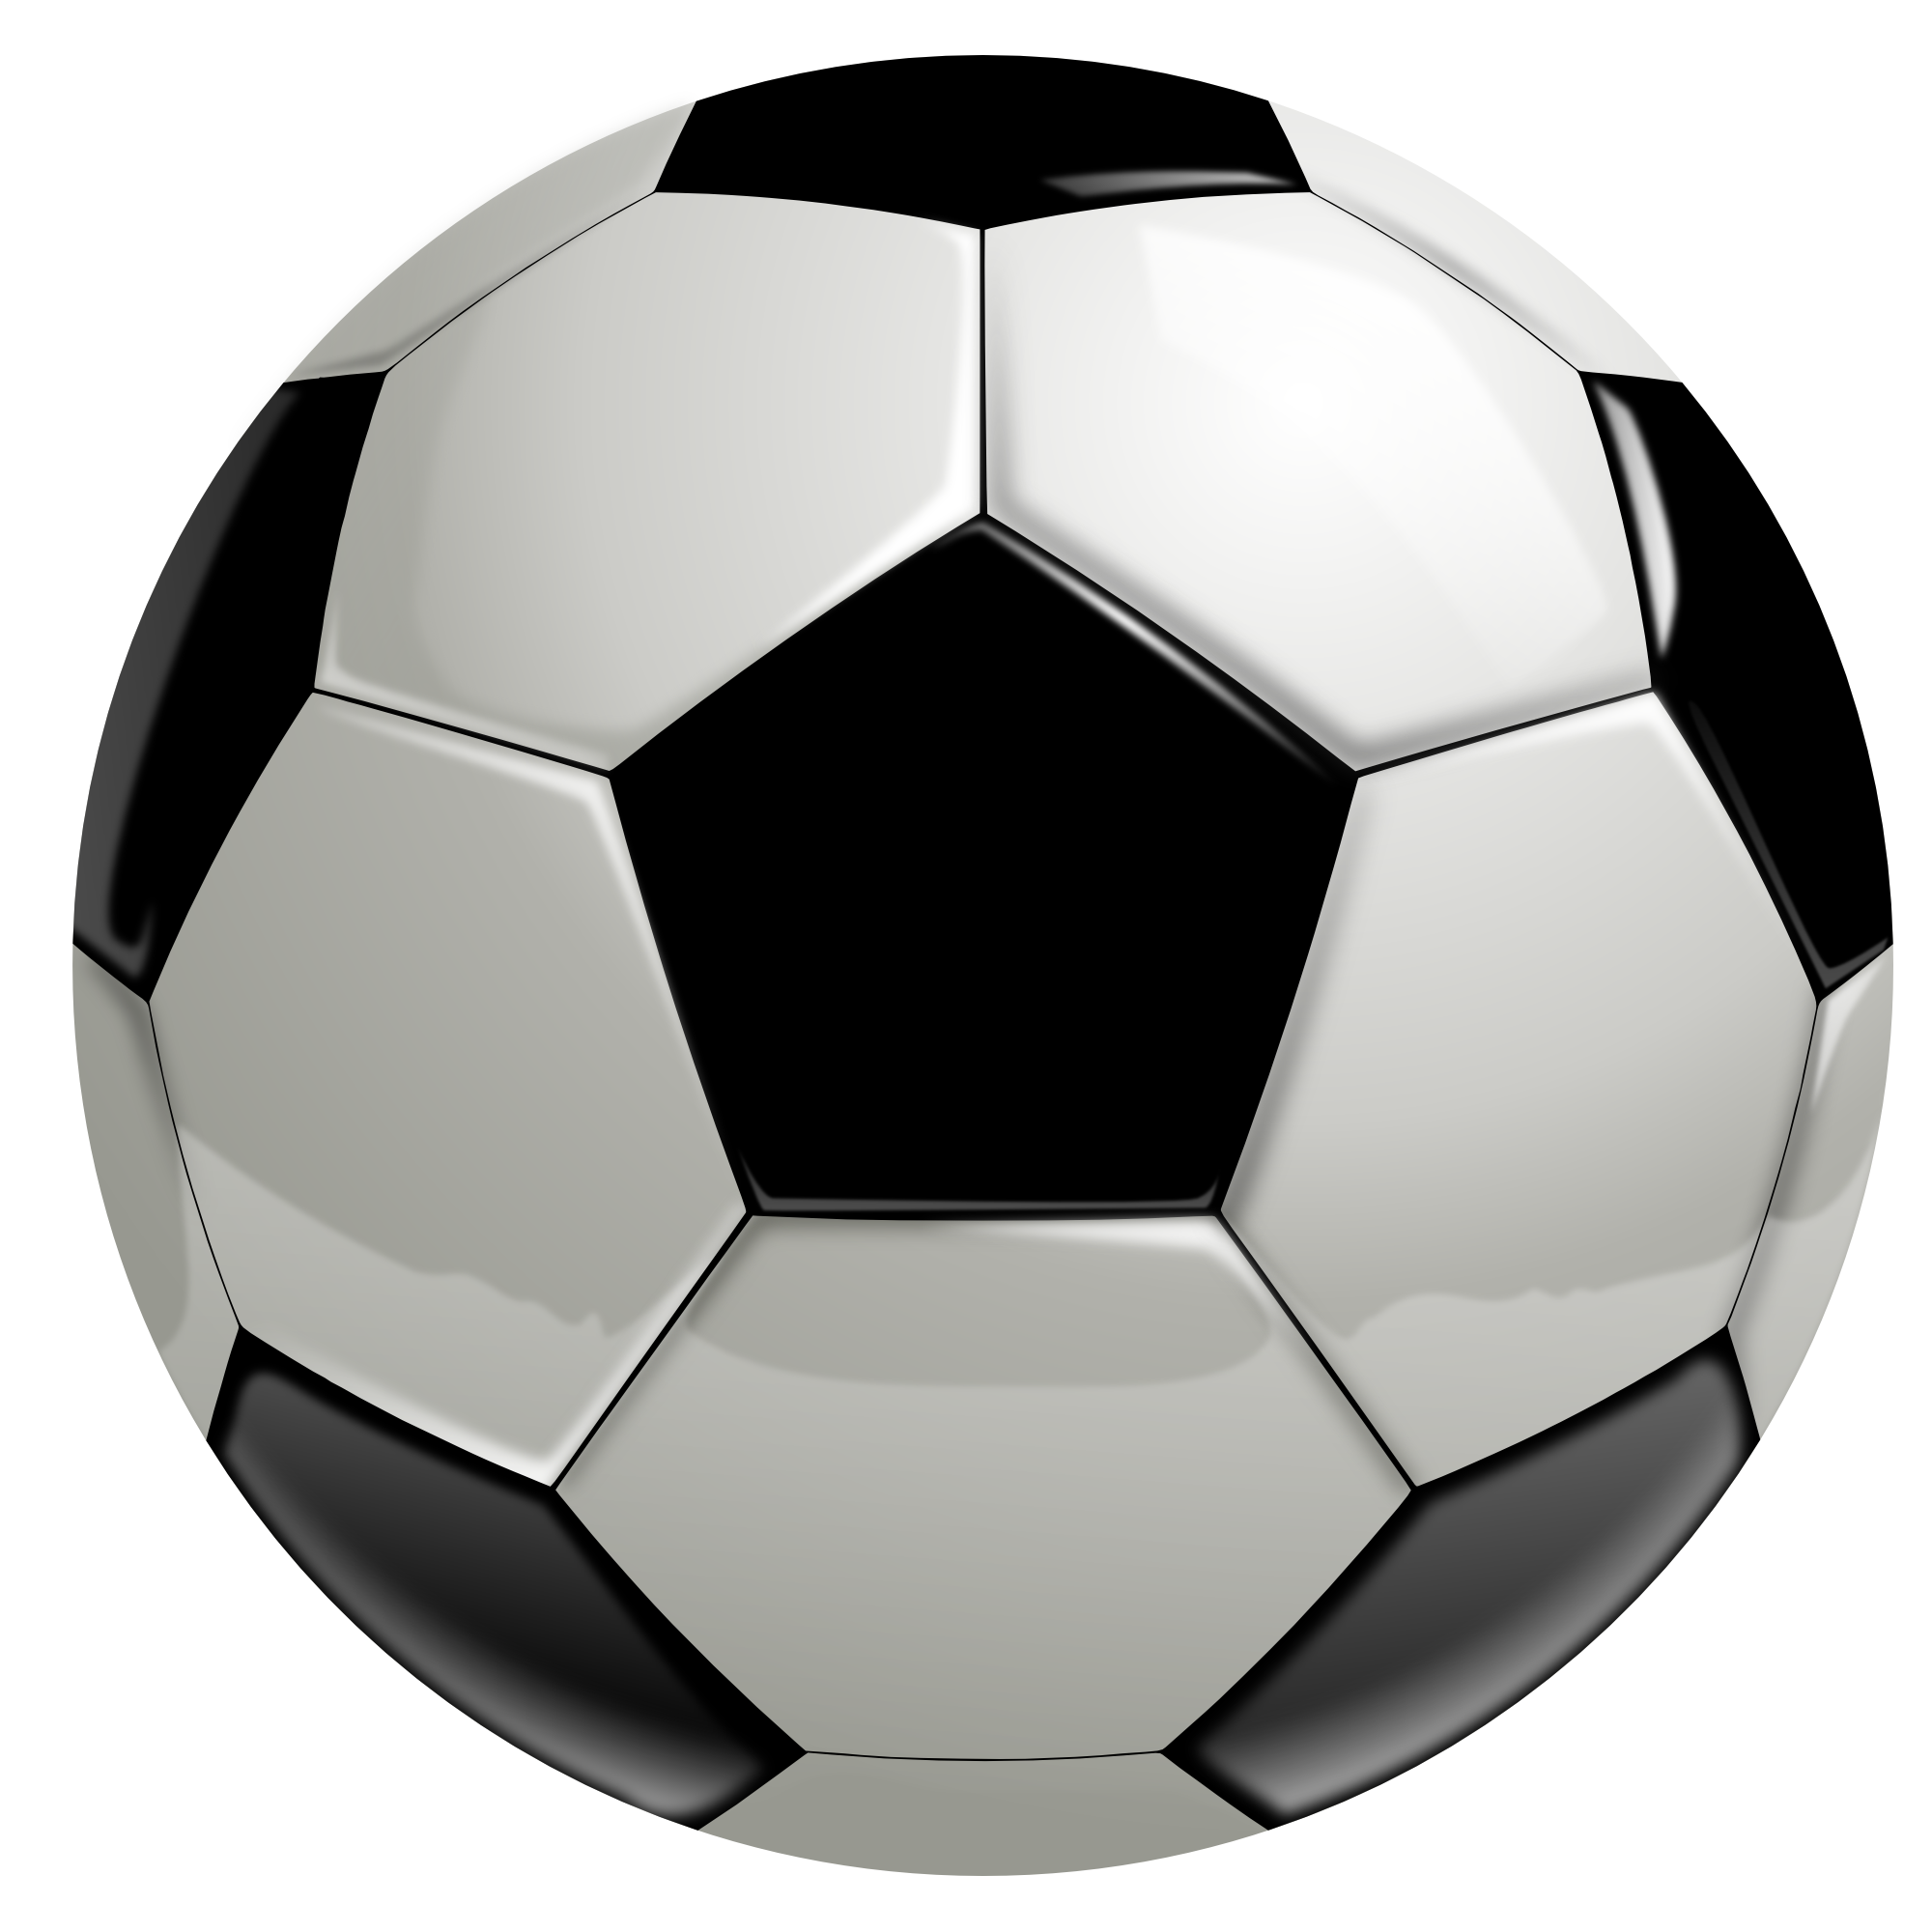 football transparent image #8883